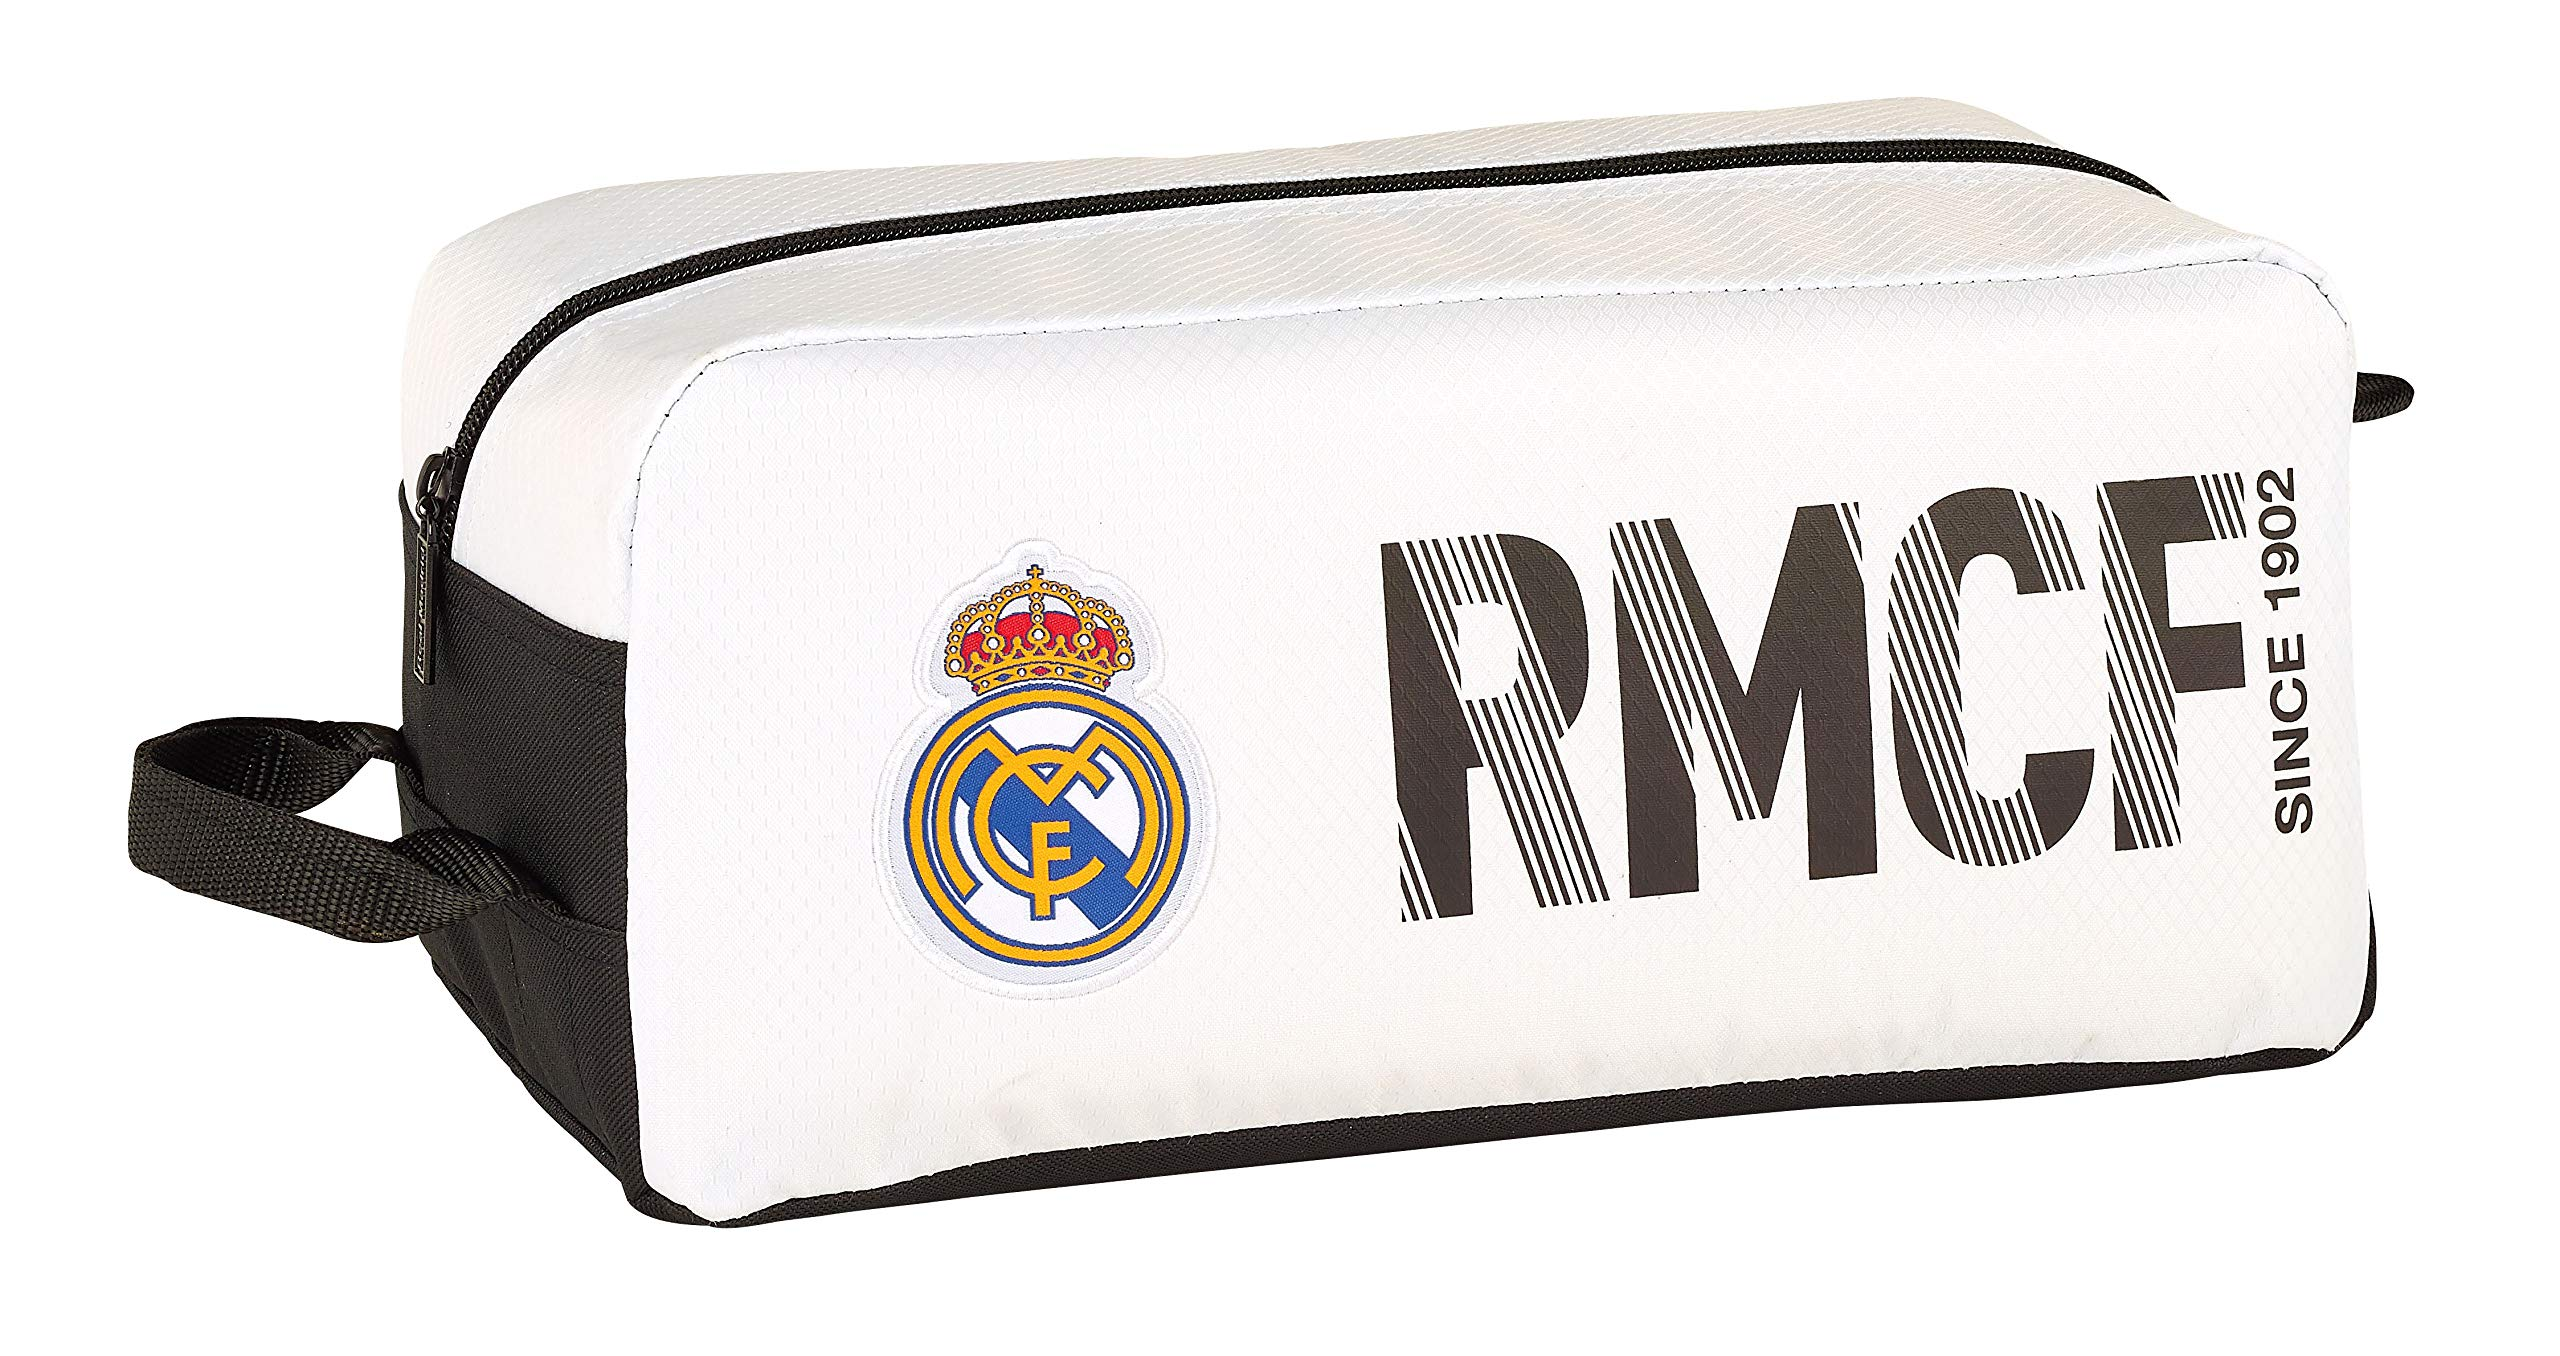 Real madrid cf Bolso Zapatillas zapatillero 34 cm.